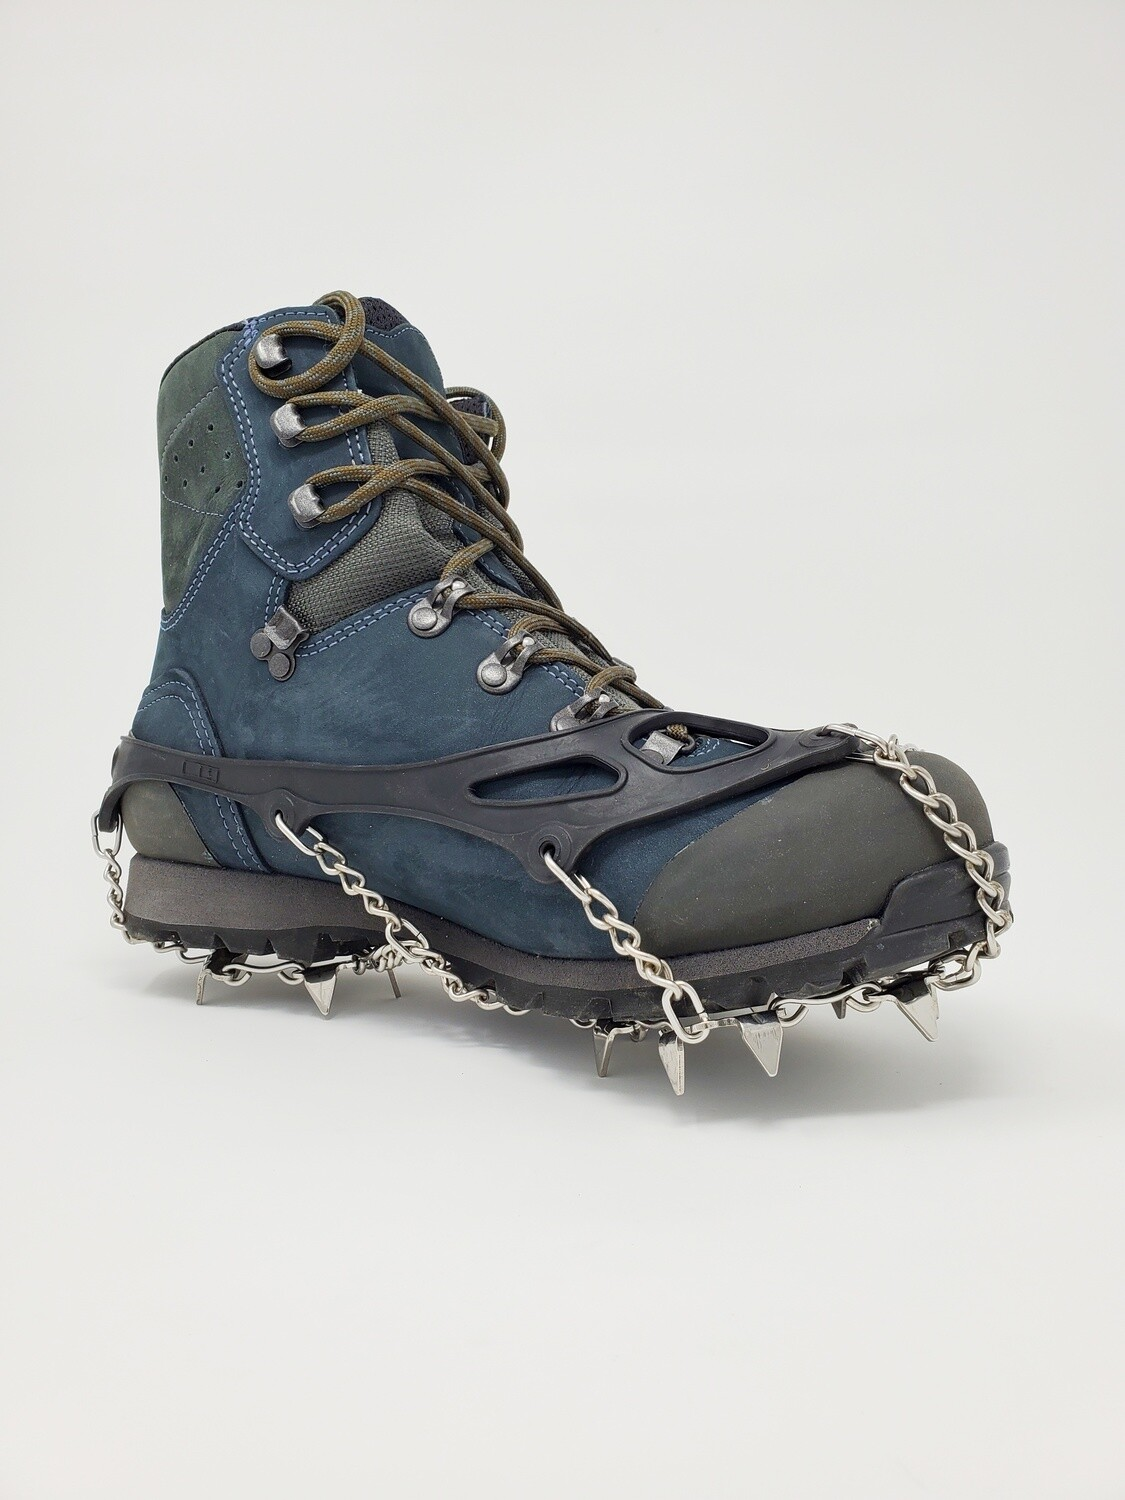 Winter Hiking Anti Slip Micro spikes Traction Device - Free Shipping!